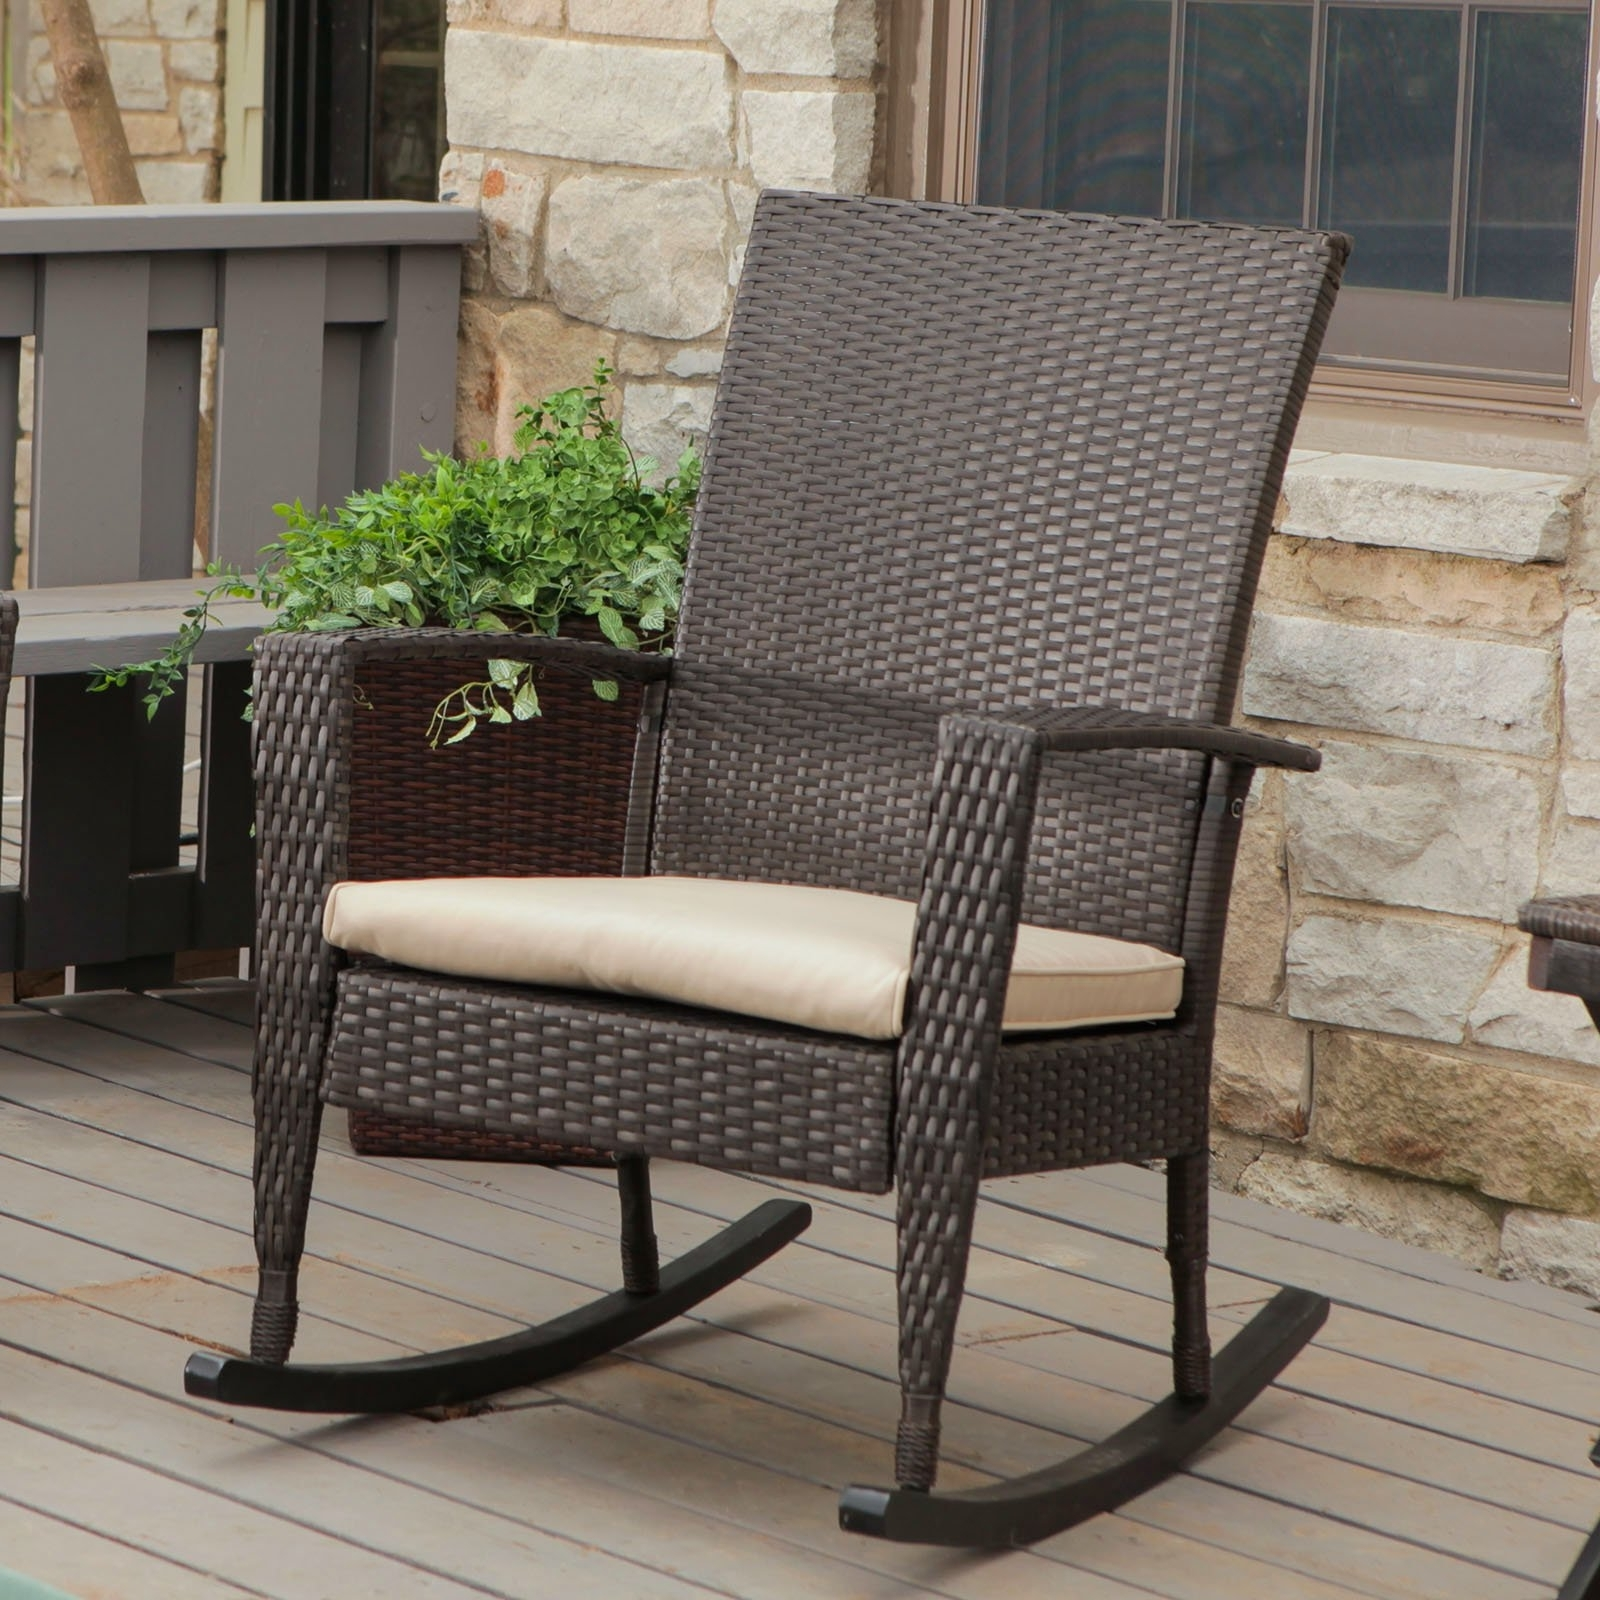 Outdoor Plastic Wicker Rocking Chairs Sale Black Chair Set White With Regard To Preferred Plastic Patio Rocking Chairs (View 7 of 20)